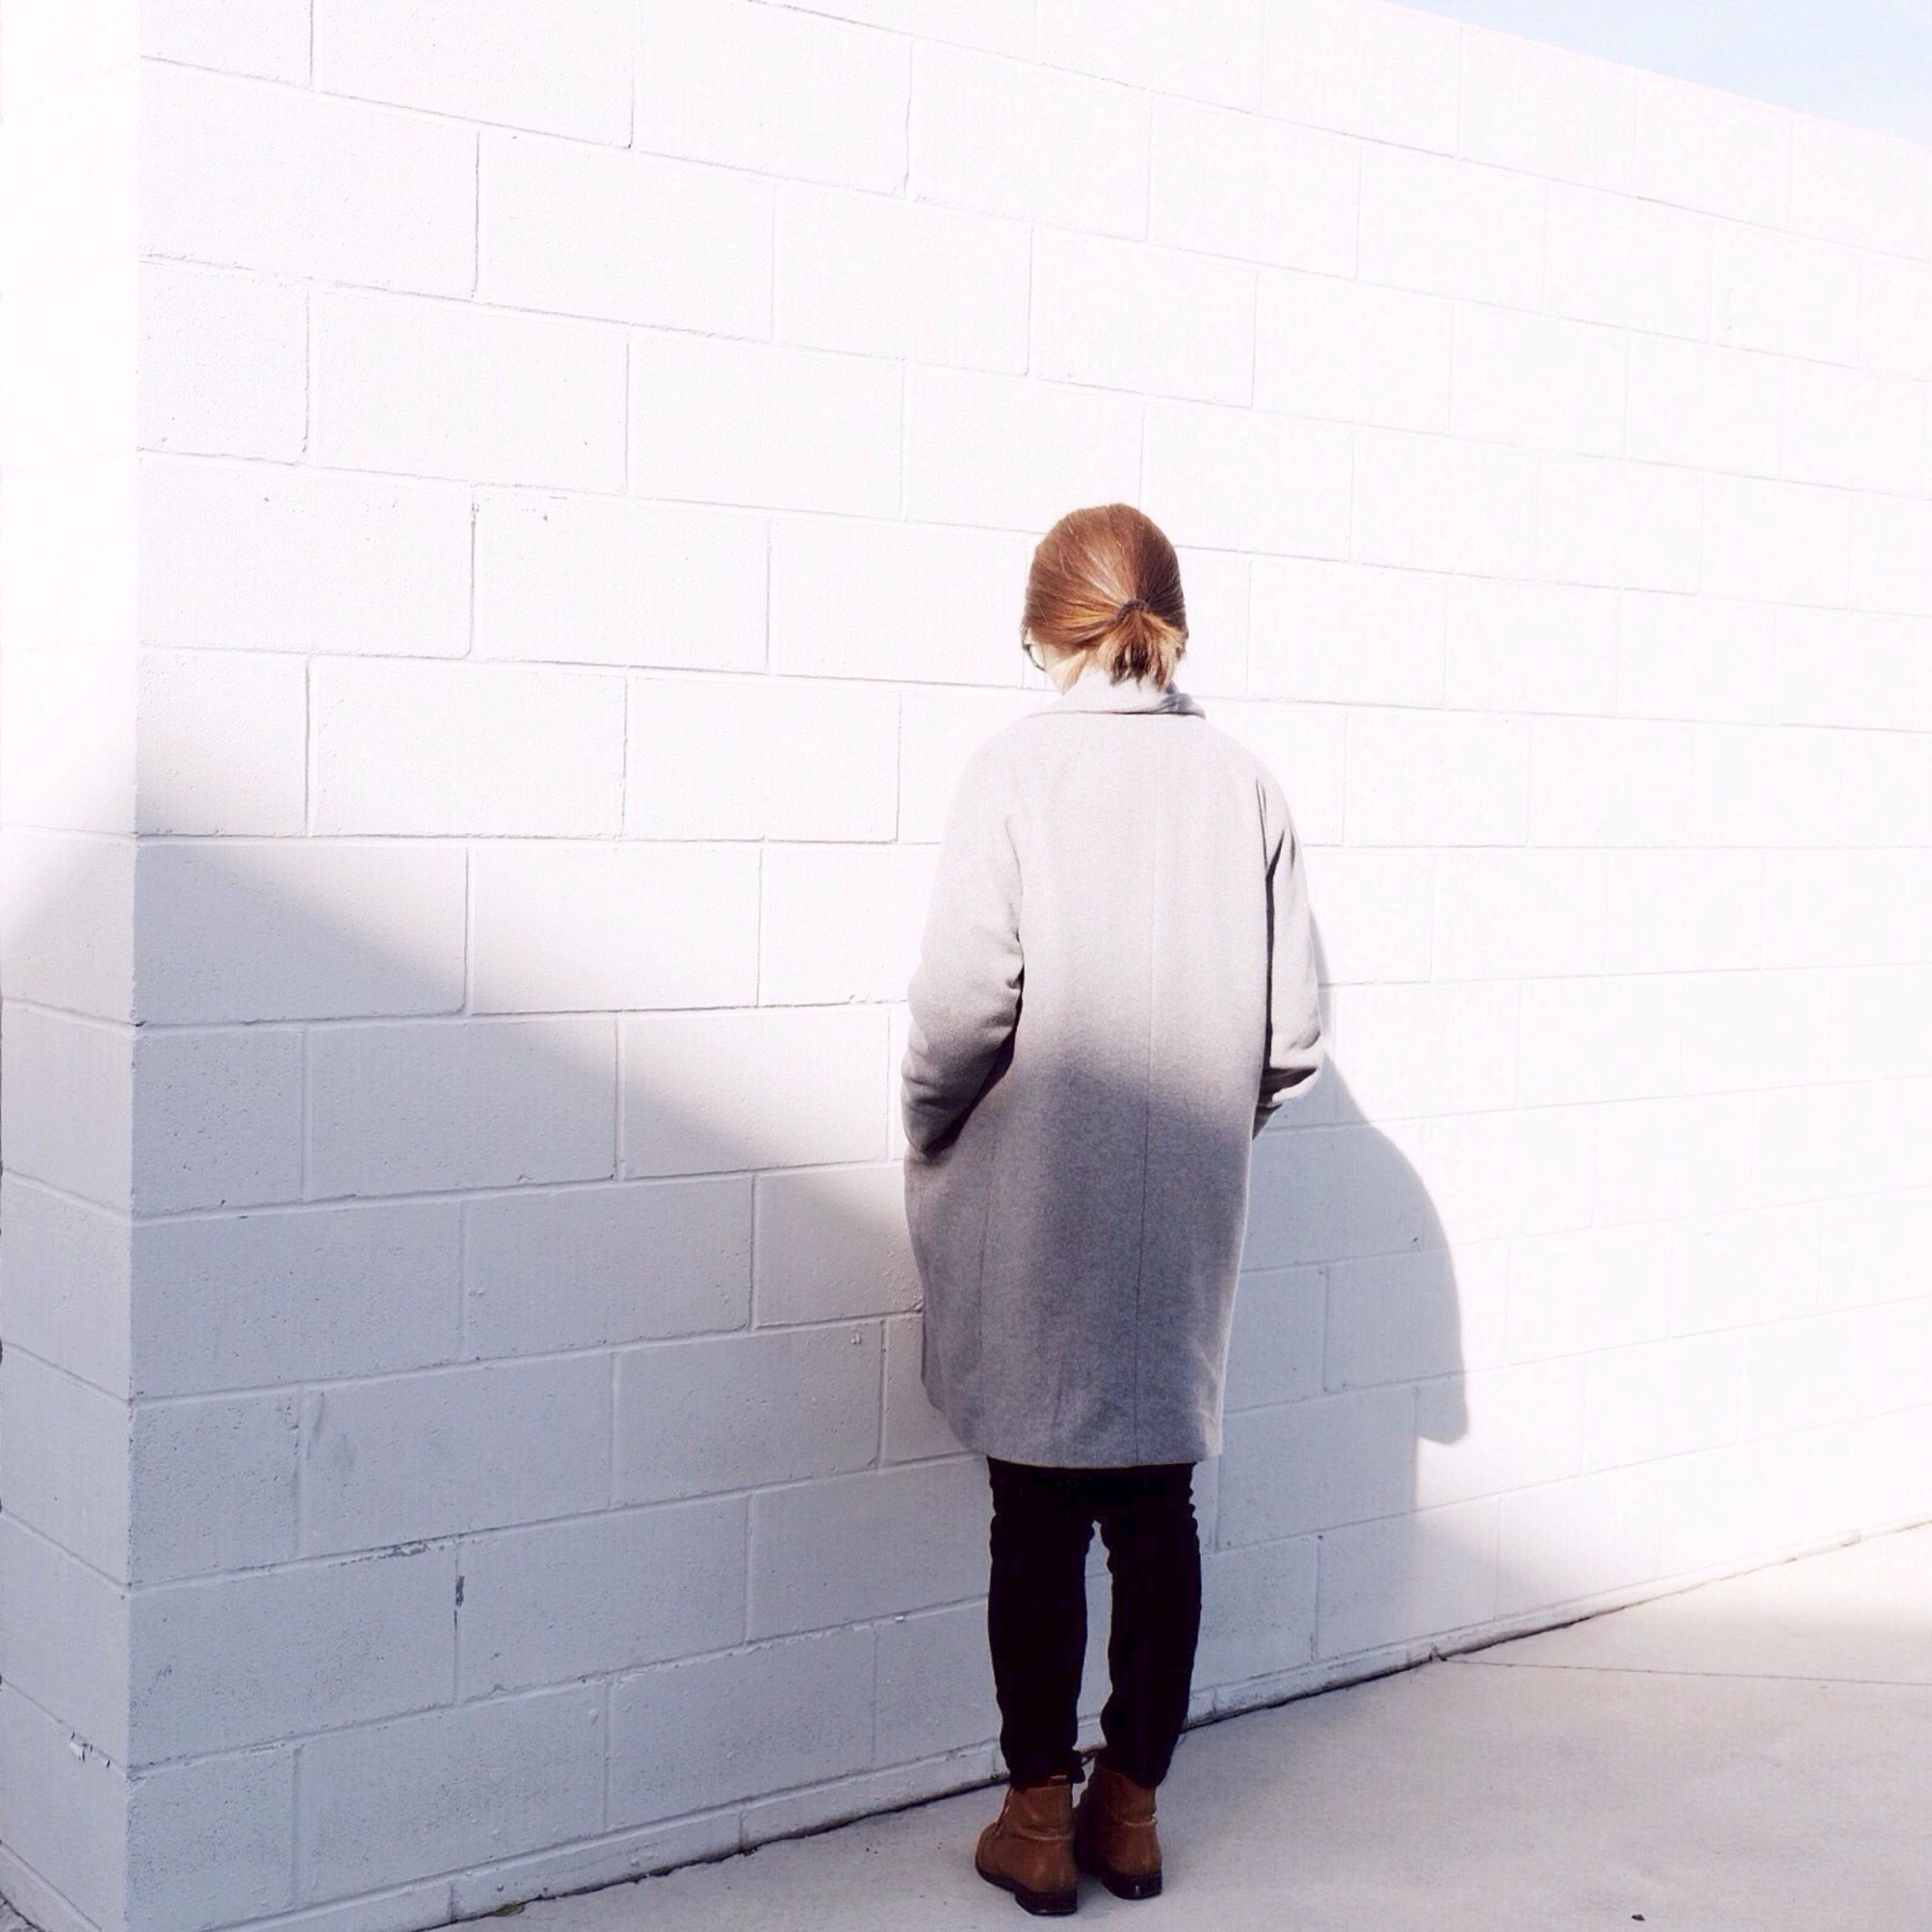 standing, casual clothing, lifestyles, rear view, full length, wall - building feature, walking, young adult, leisure activity, architecture, person, built structure, front view, wall, young women, three quarter length, men, brick wall